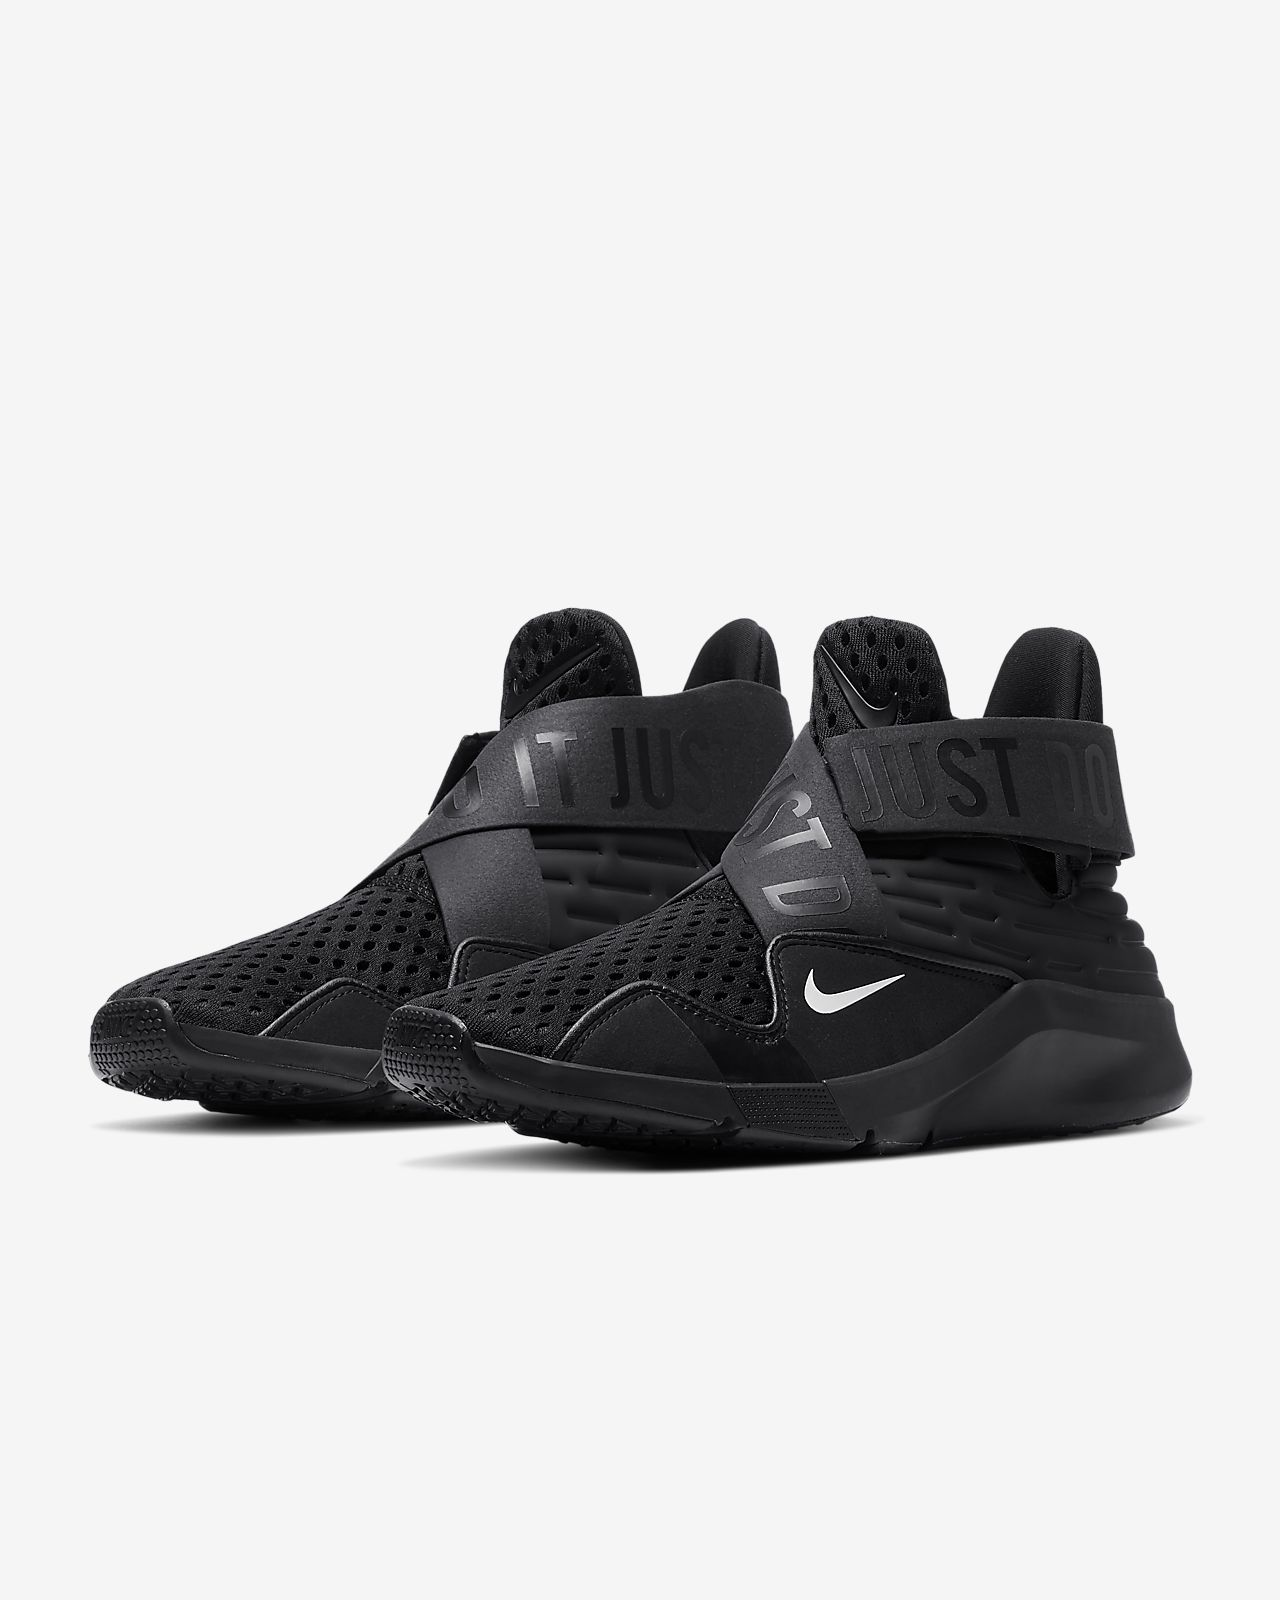 Chaussures NIKE - Zoom Elevate 2 AT6708 010  Black/White/Black - Fitness - Chaussures de sport - Femme